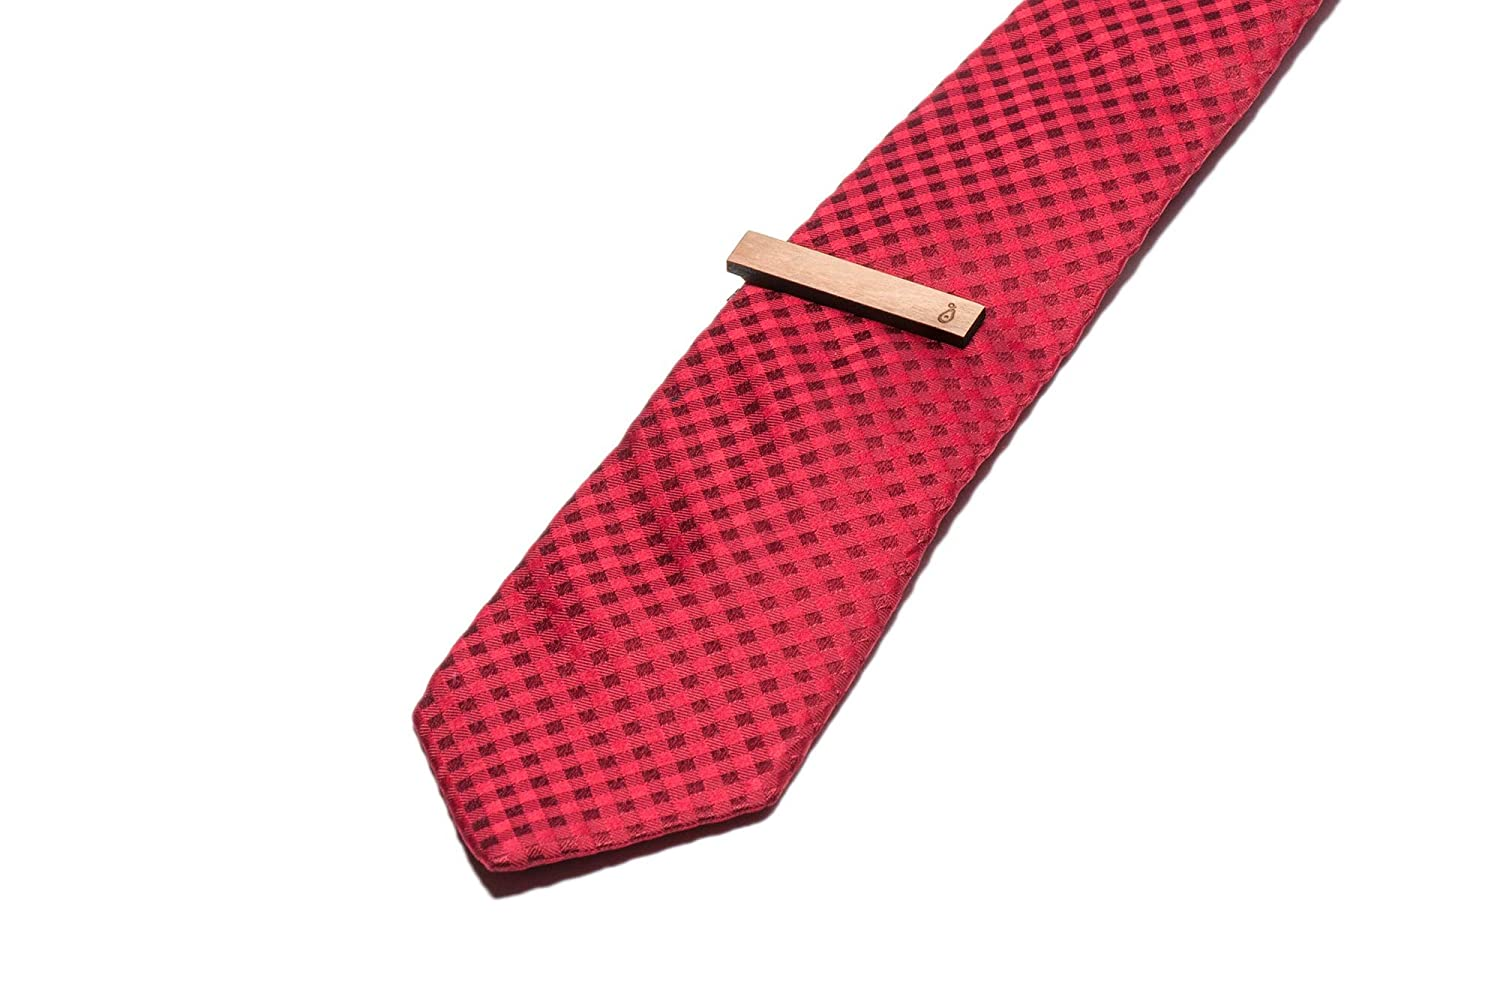 Cherry Wood Tie Bar Engraved in The USA Wooden Accessories Company Wooden Tie Clips with Laser Engraved Pear Half Design